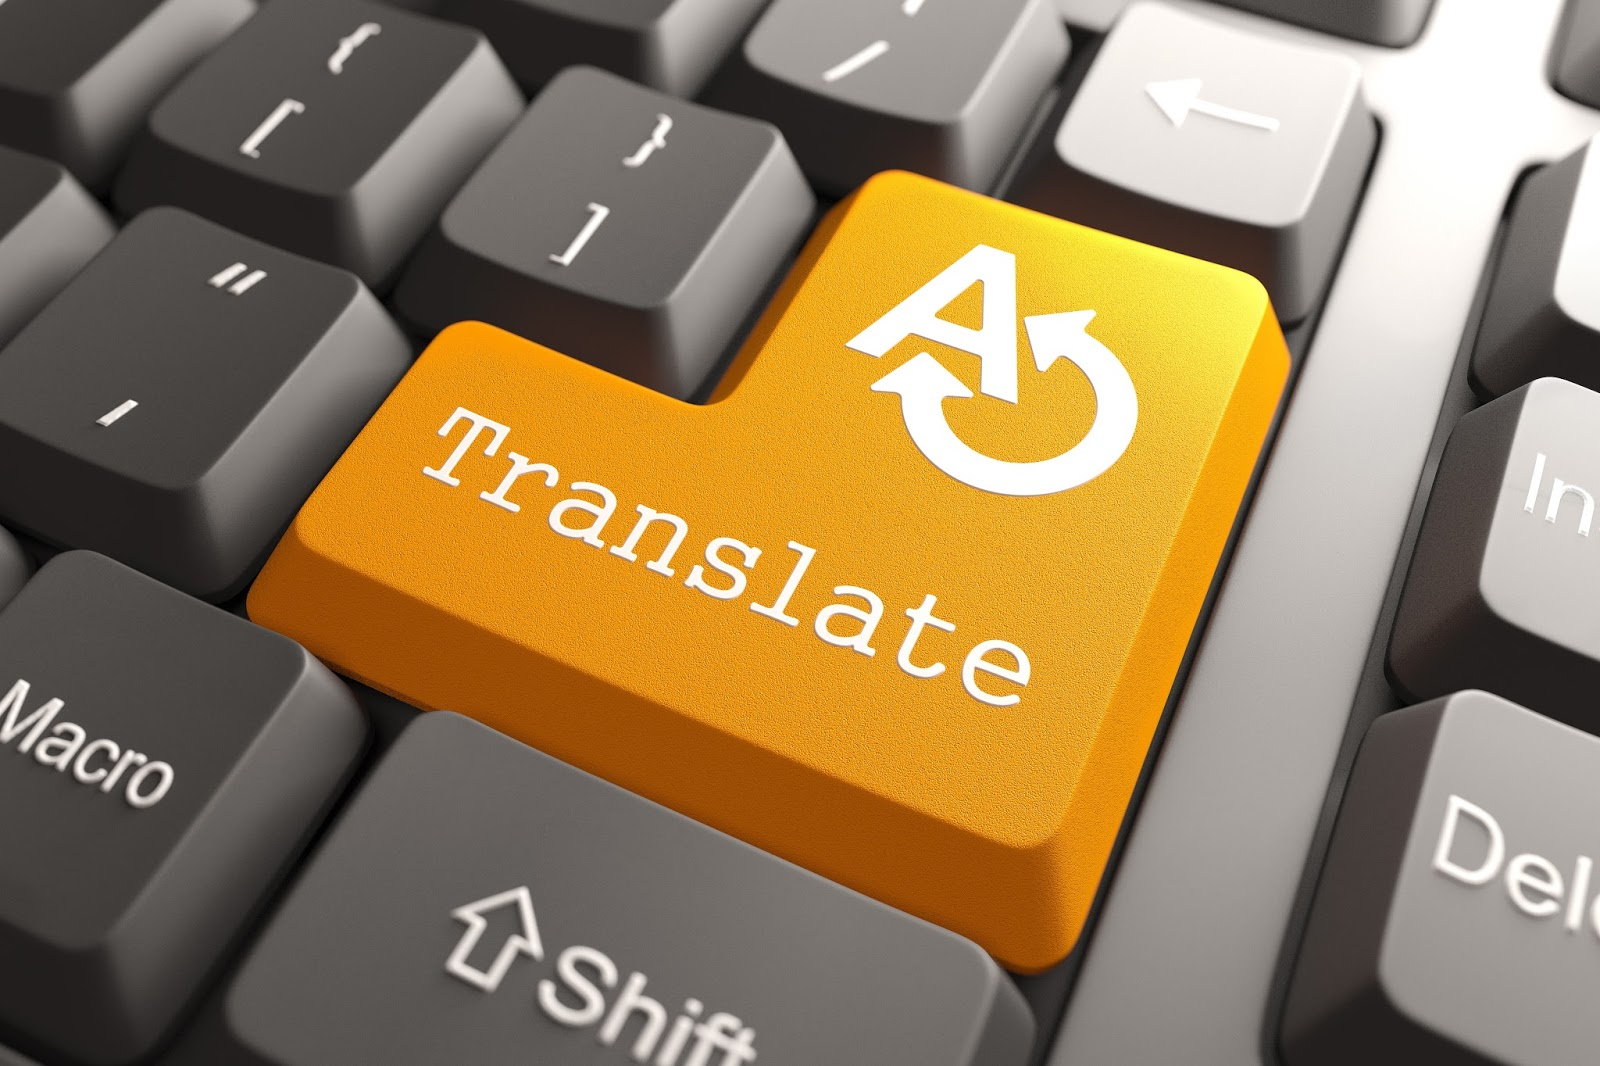 Traducción paralela - Polyglot translation - Parallel text - Official Website - BenjaminMadeira